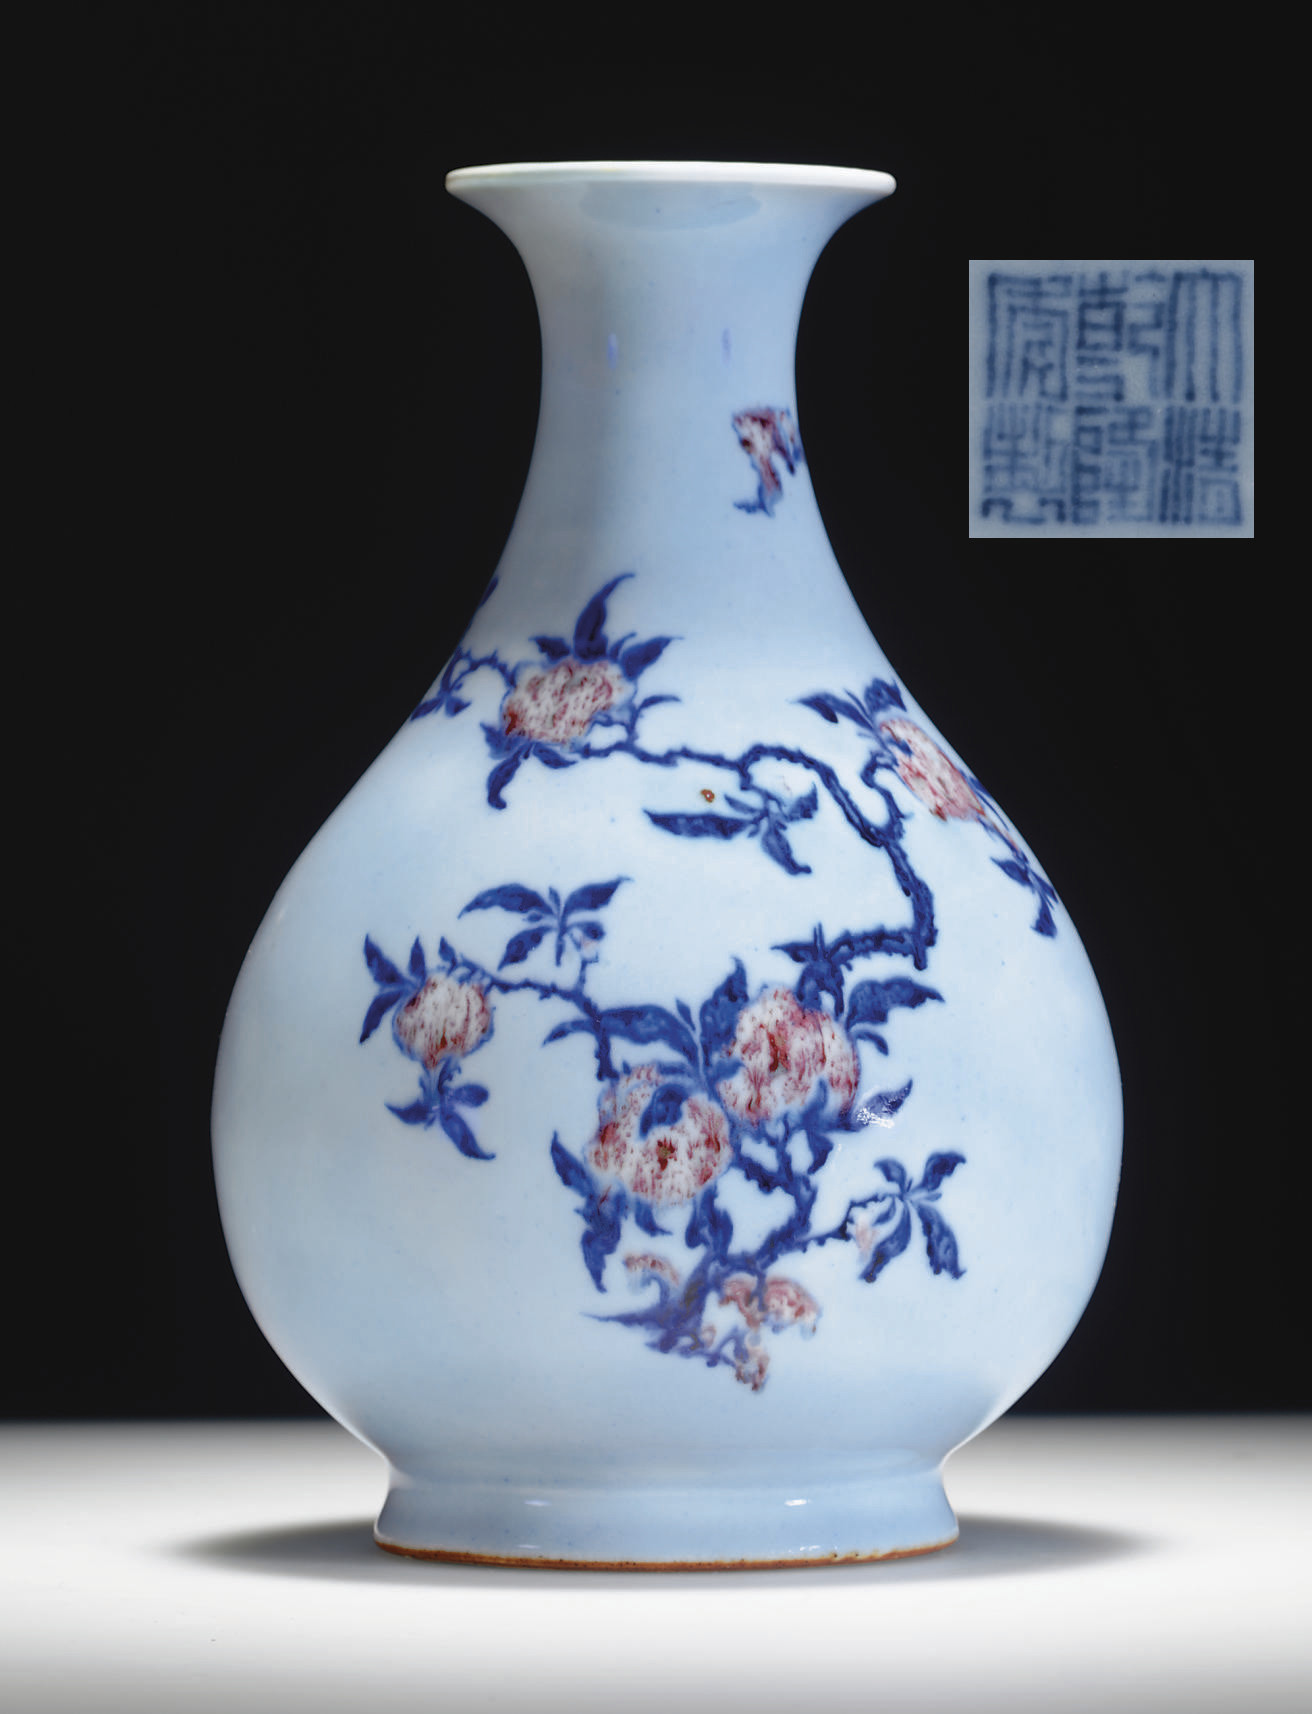 AN UNDERGLAZE BLUE AND RED-DECORATED PALE BLUE-GLAZED PEAR-SHAPED VASE